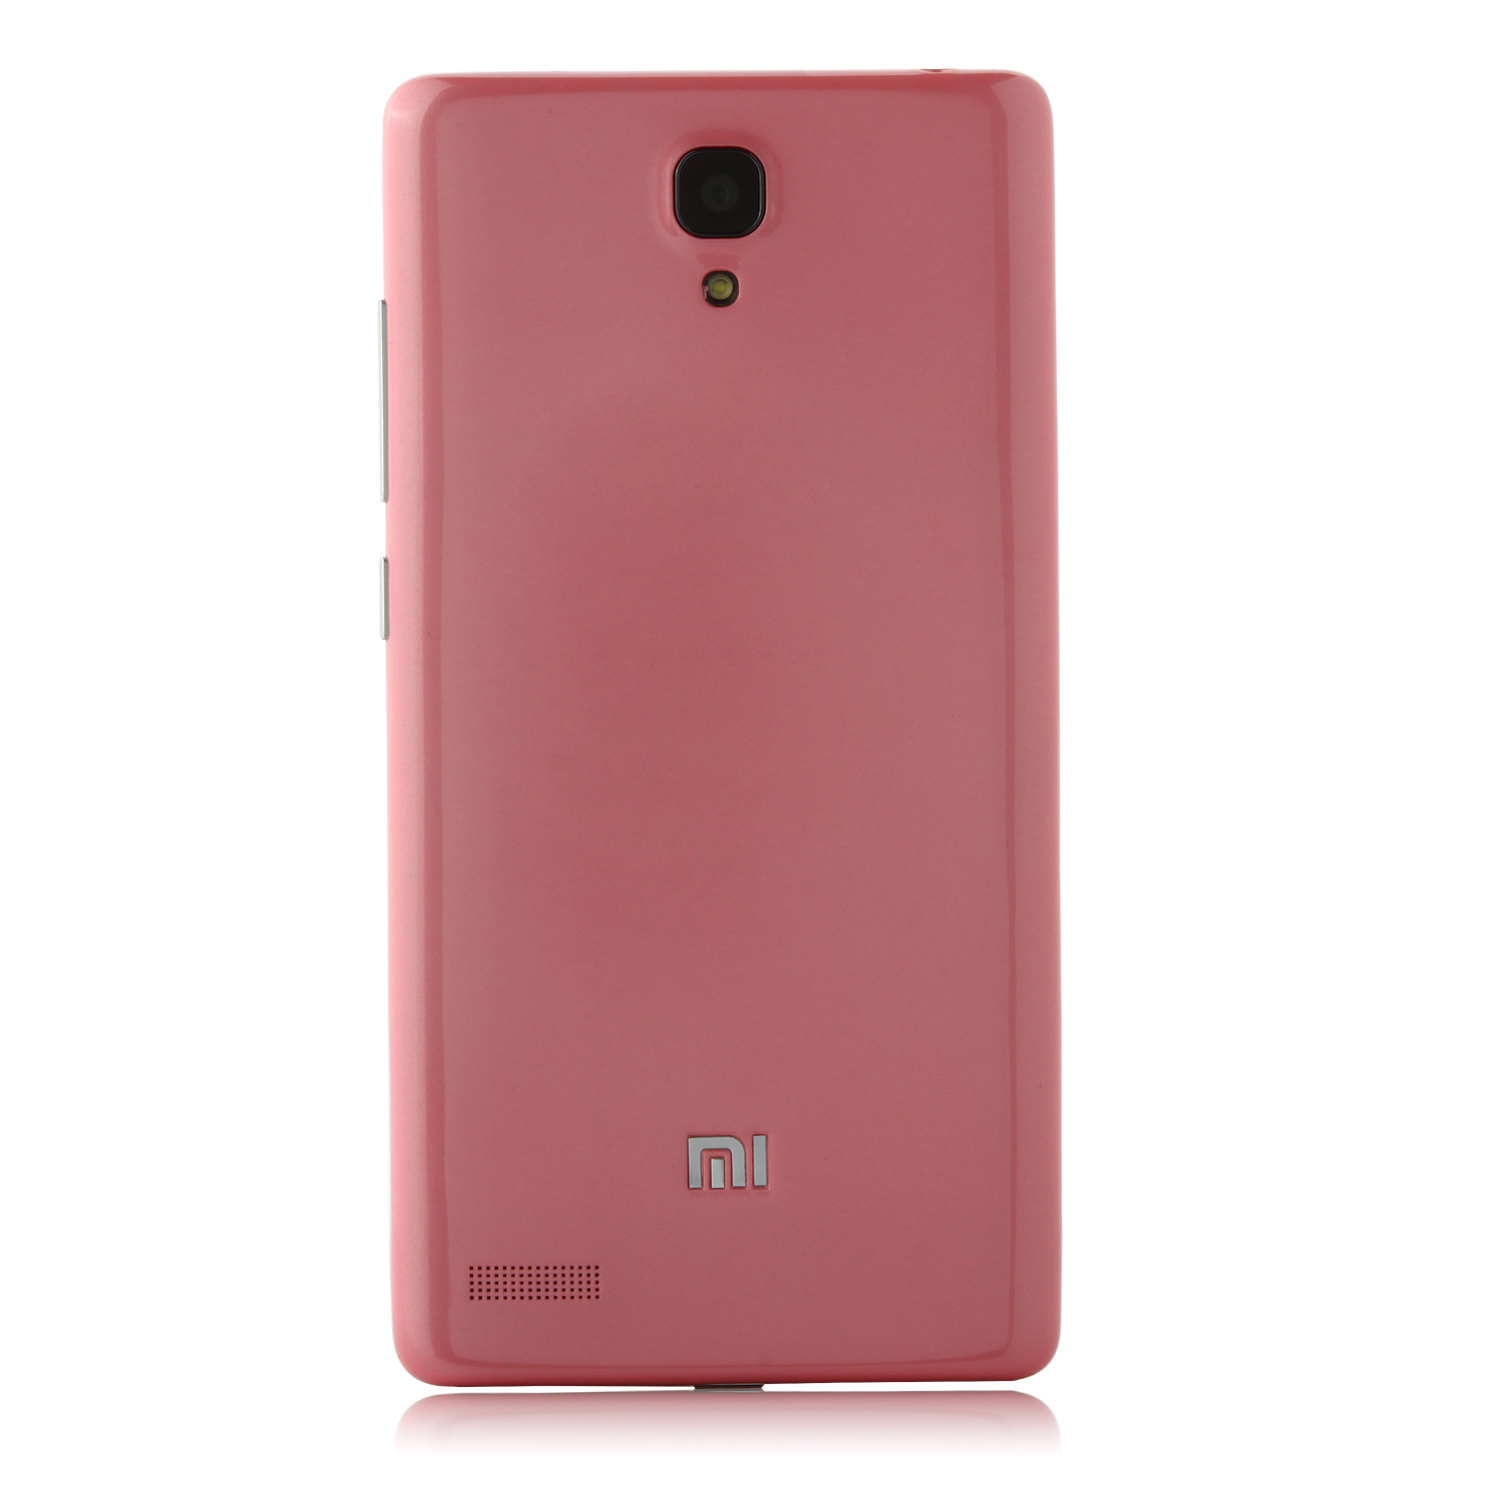 Battery Cover Back Case for XIAOMI Redmi Note Smartphone Pink